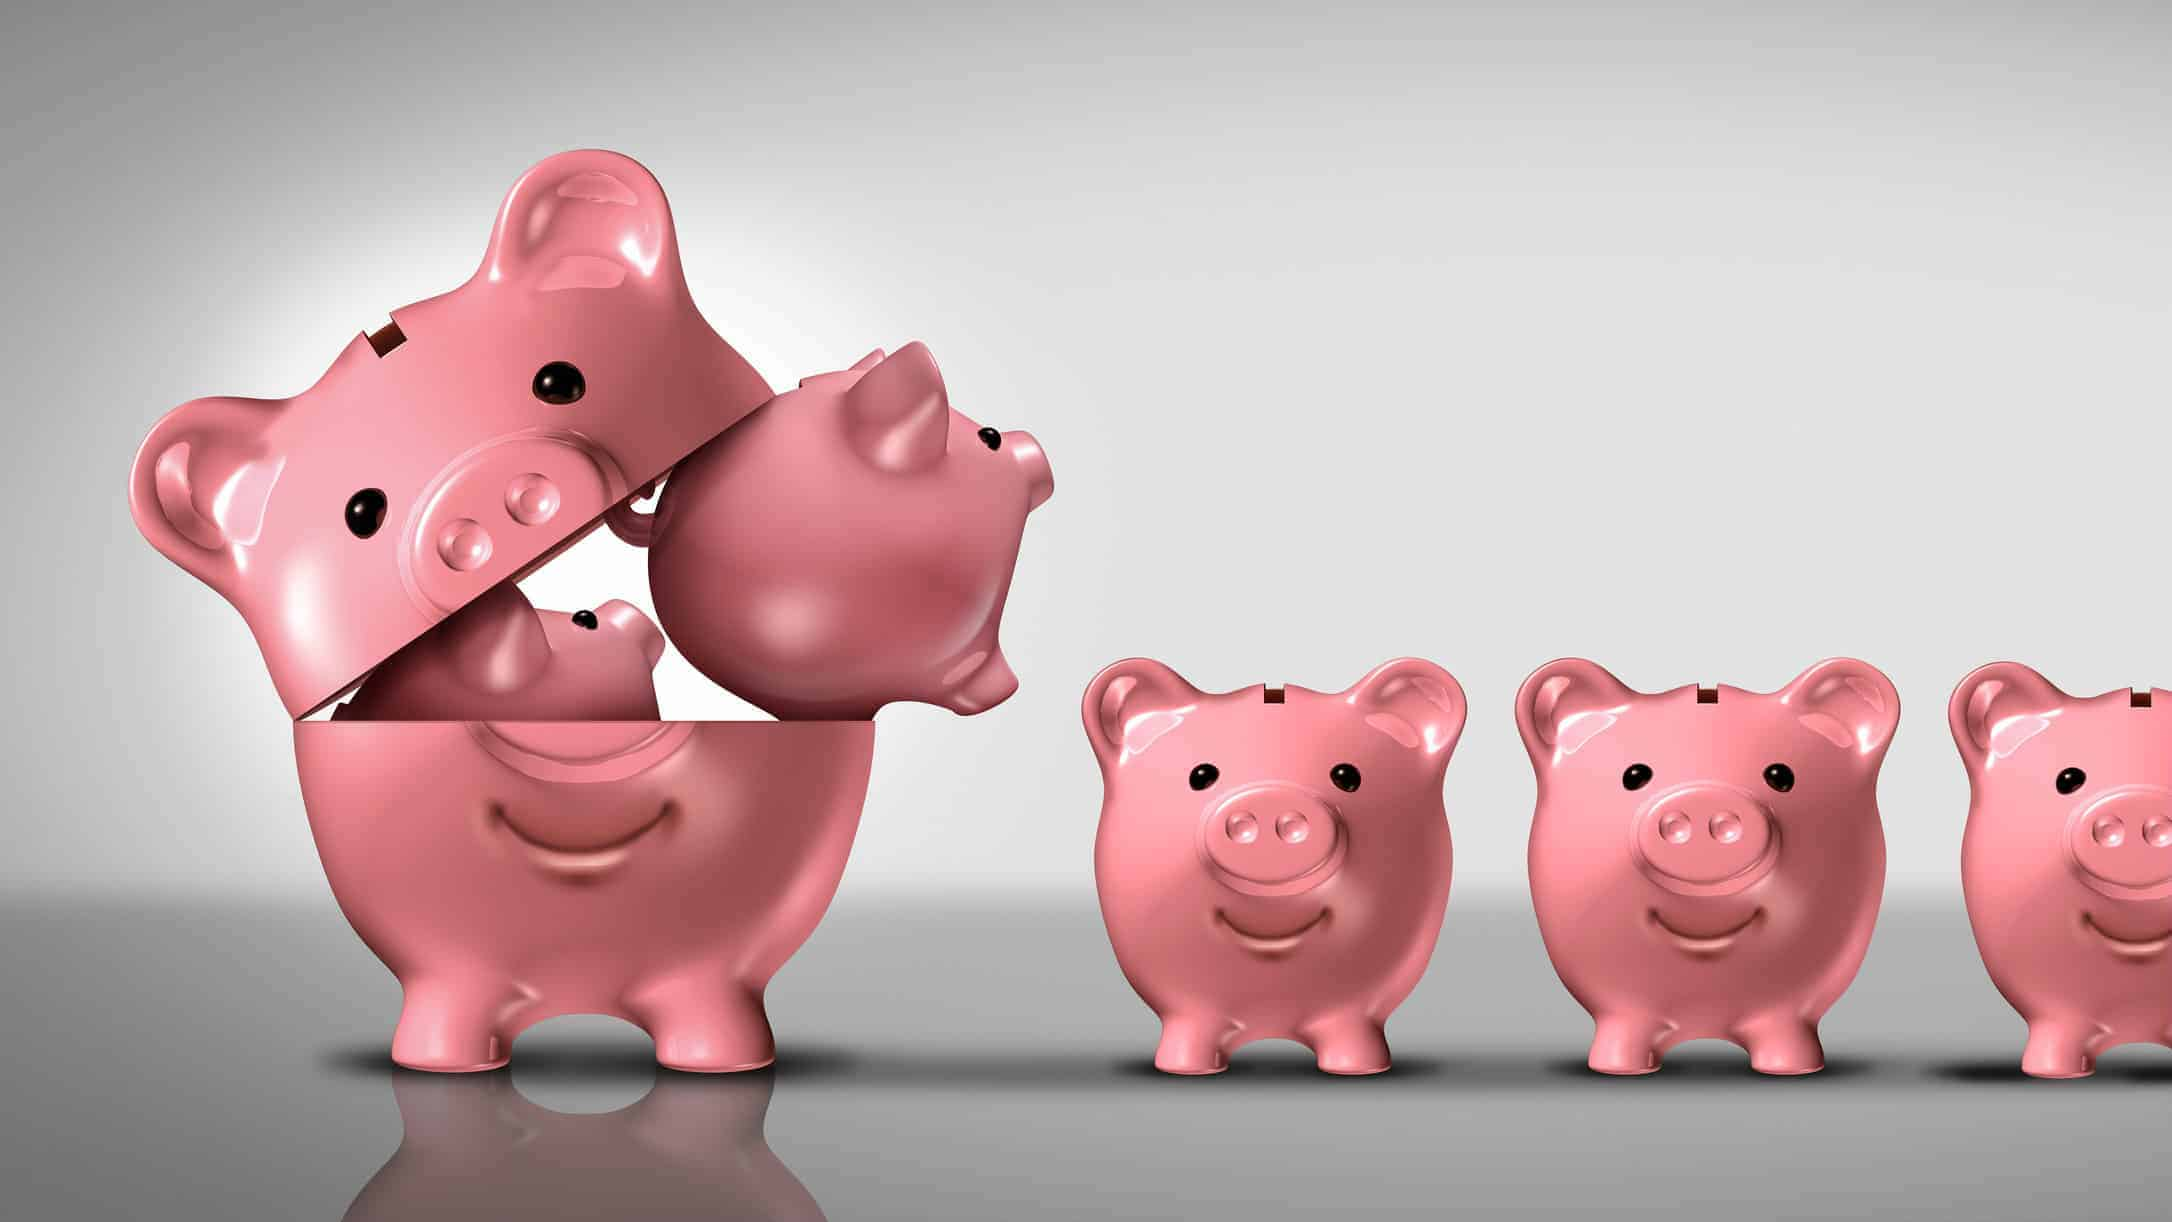 Diversifed asx shares and dividends represented by small piggy banks coming out of larger piggy bank